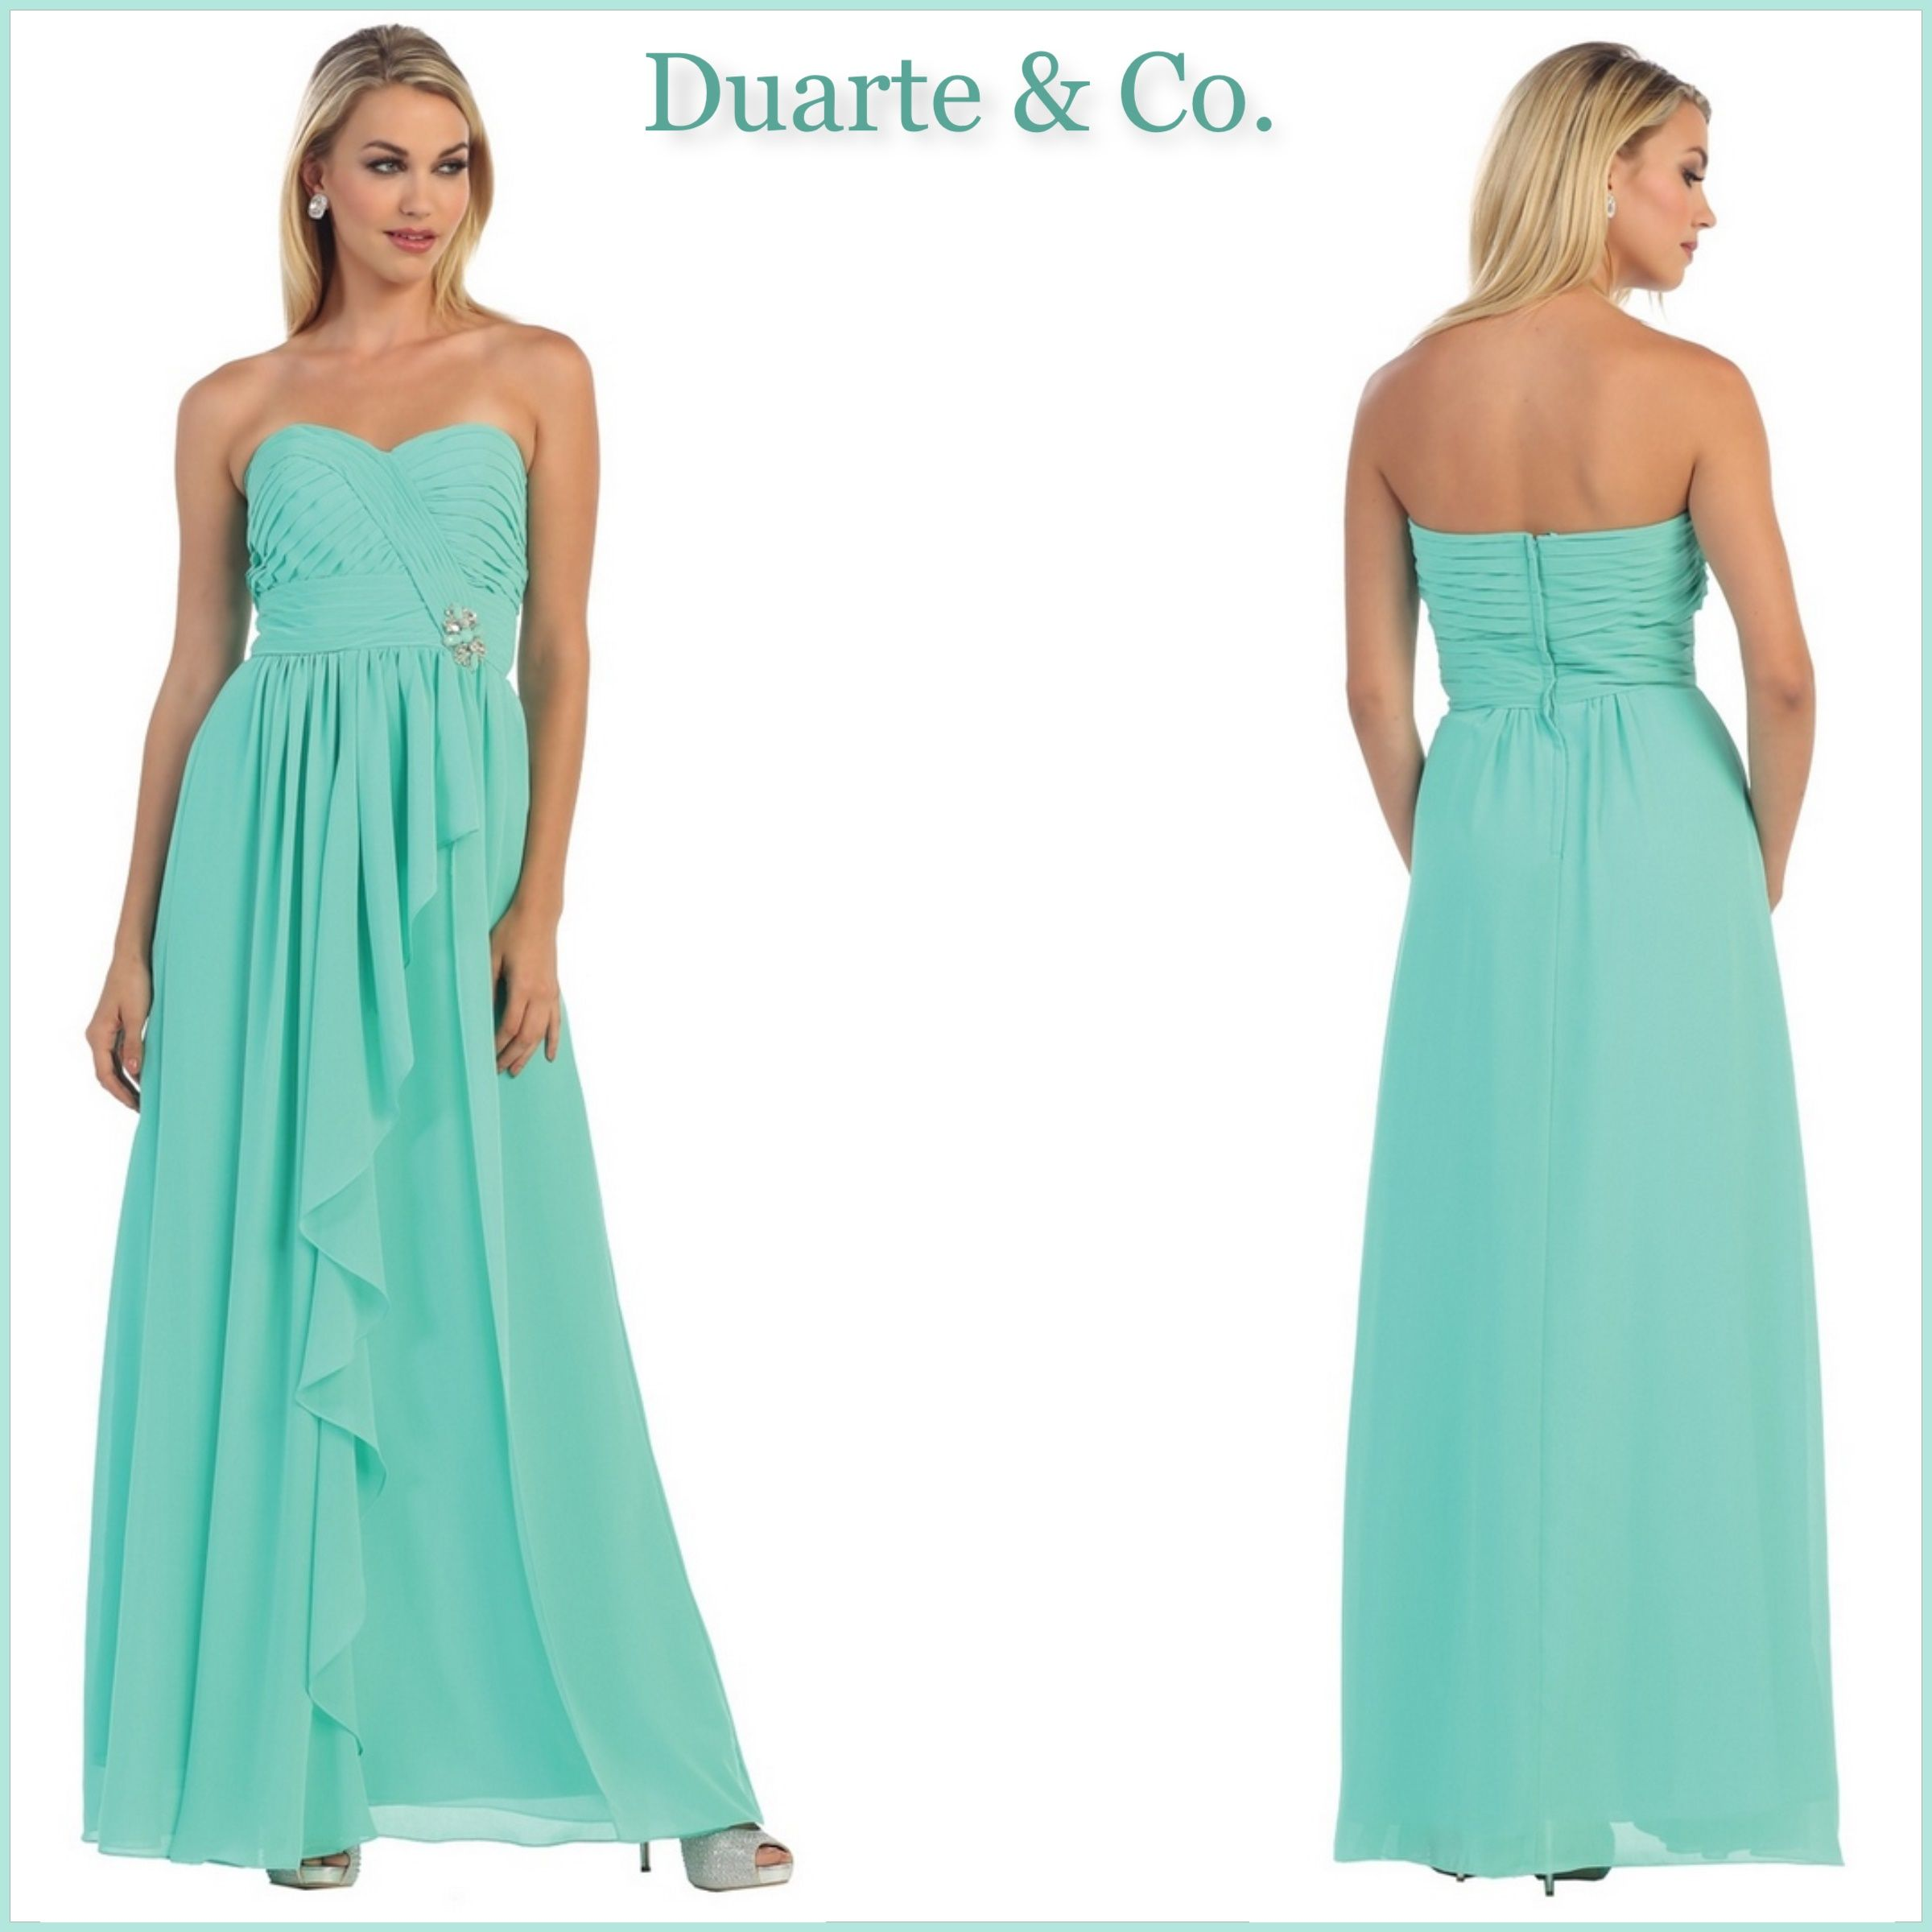 af57d9907f MQ895  98.00 Strapless Bridesmaid Dress W Plus Sizes 16 colors and is great  for any occasion. Available in plus sizes 4 to size 26.